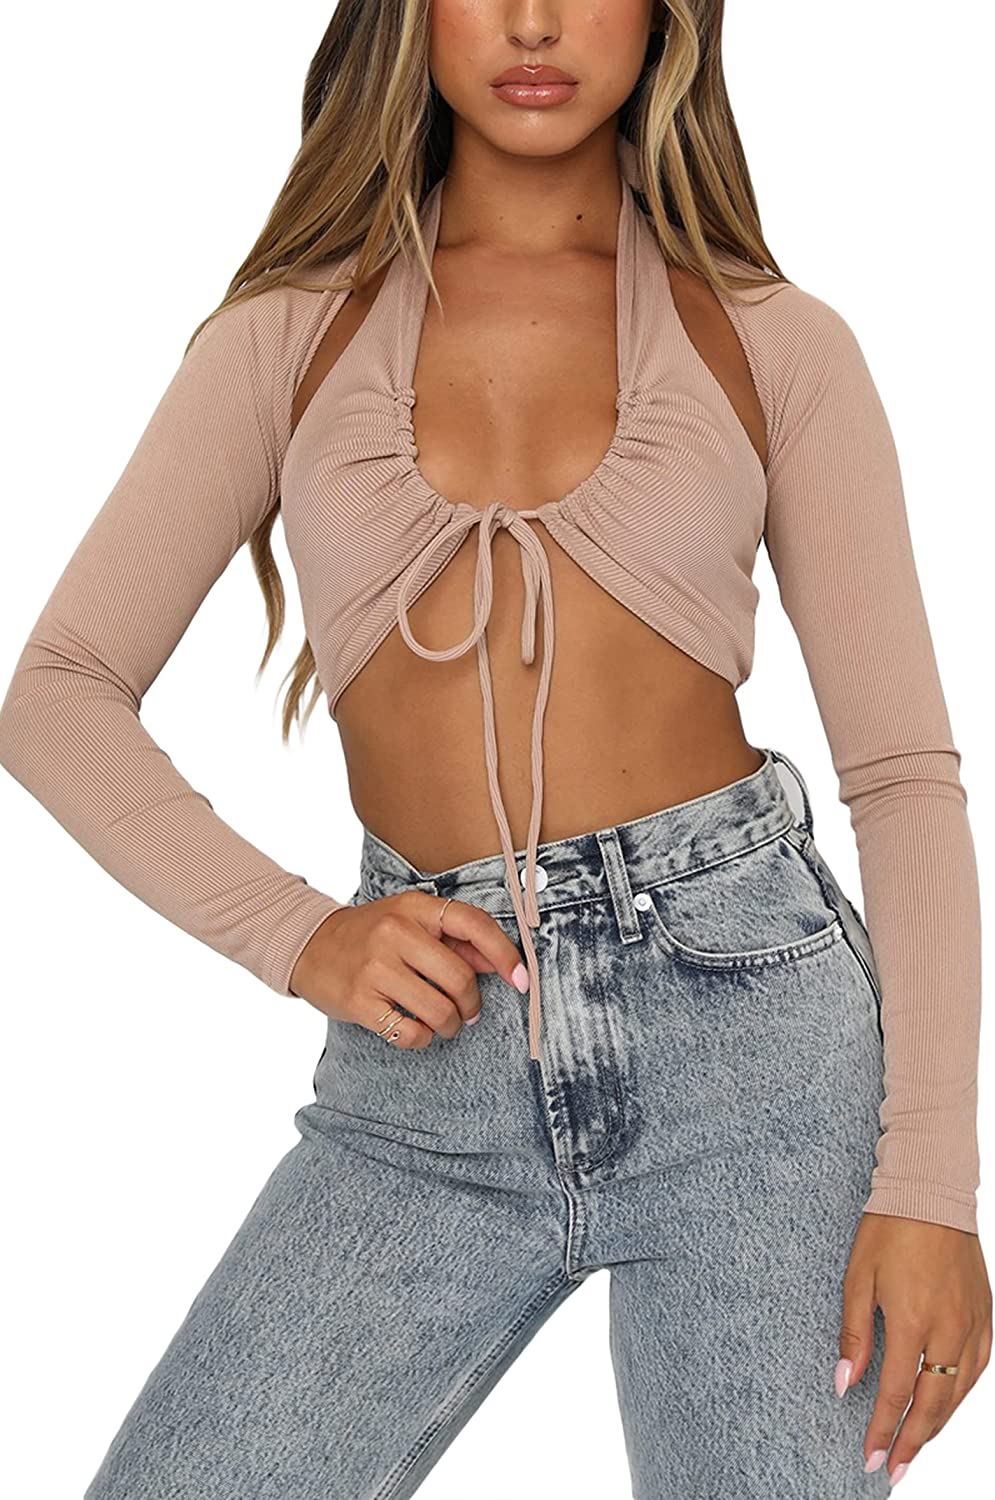 Women Y2K Fashion Top Halter Vest Long Sleeve Hollow Cami Top Two Piece Set E-Girl Streetwear Clothes